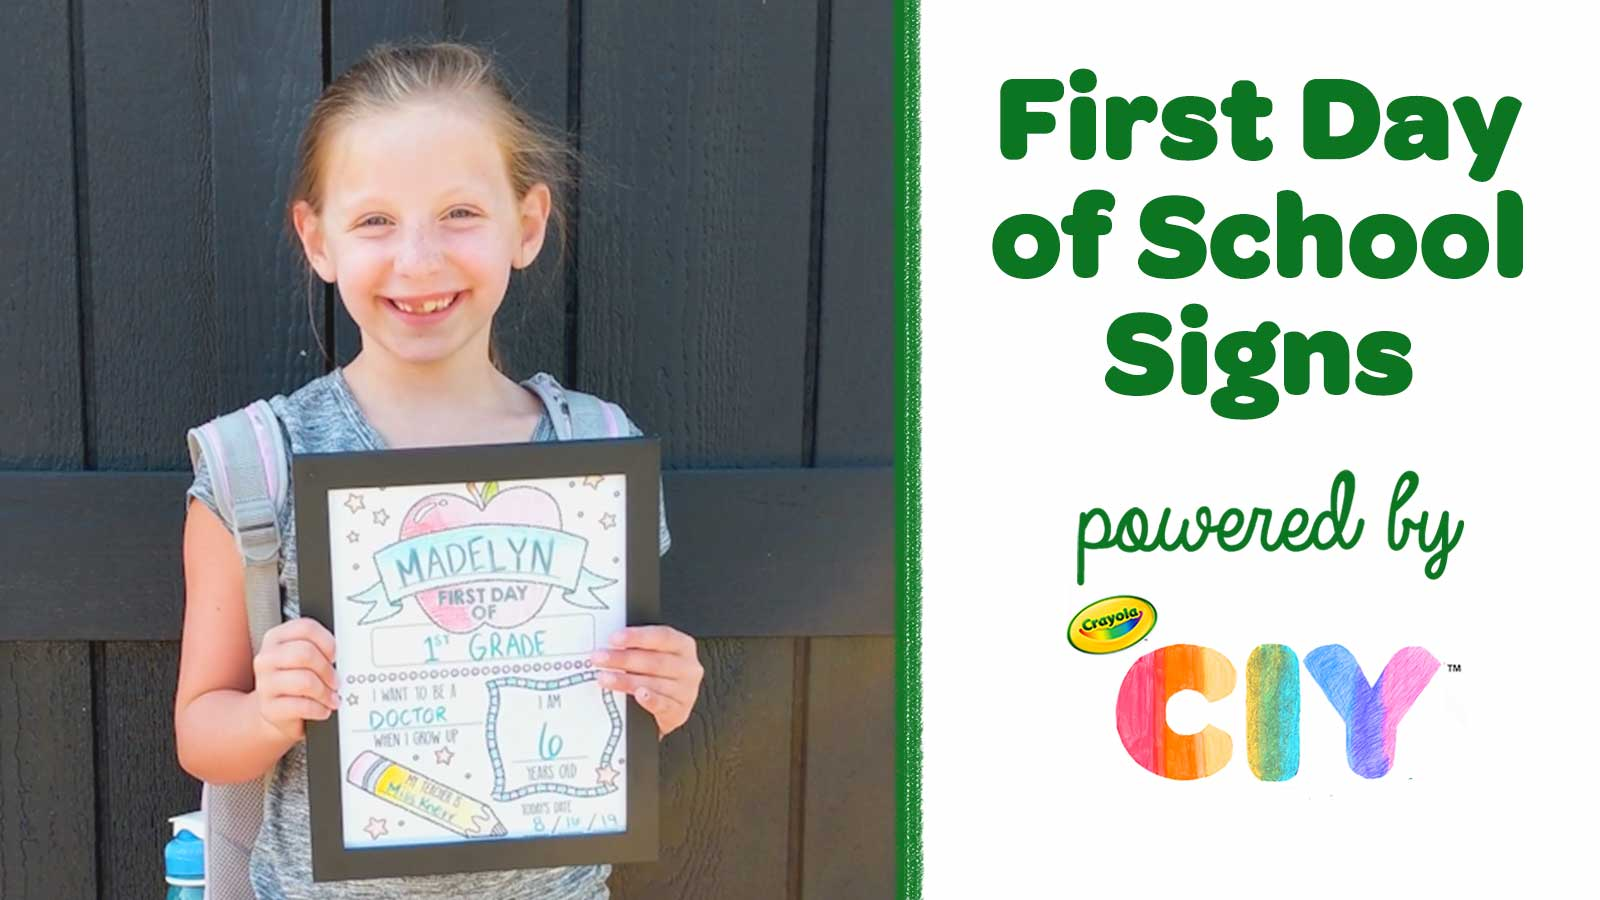 First Day of School Signs_Poster Frame